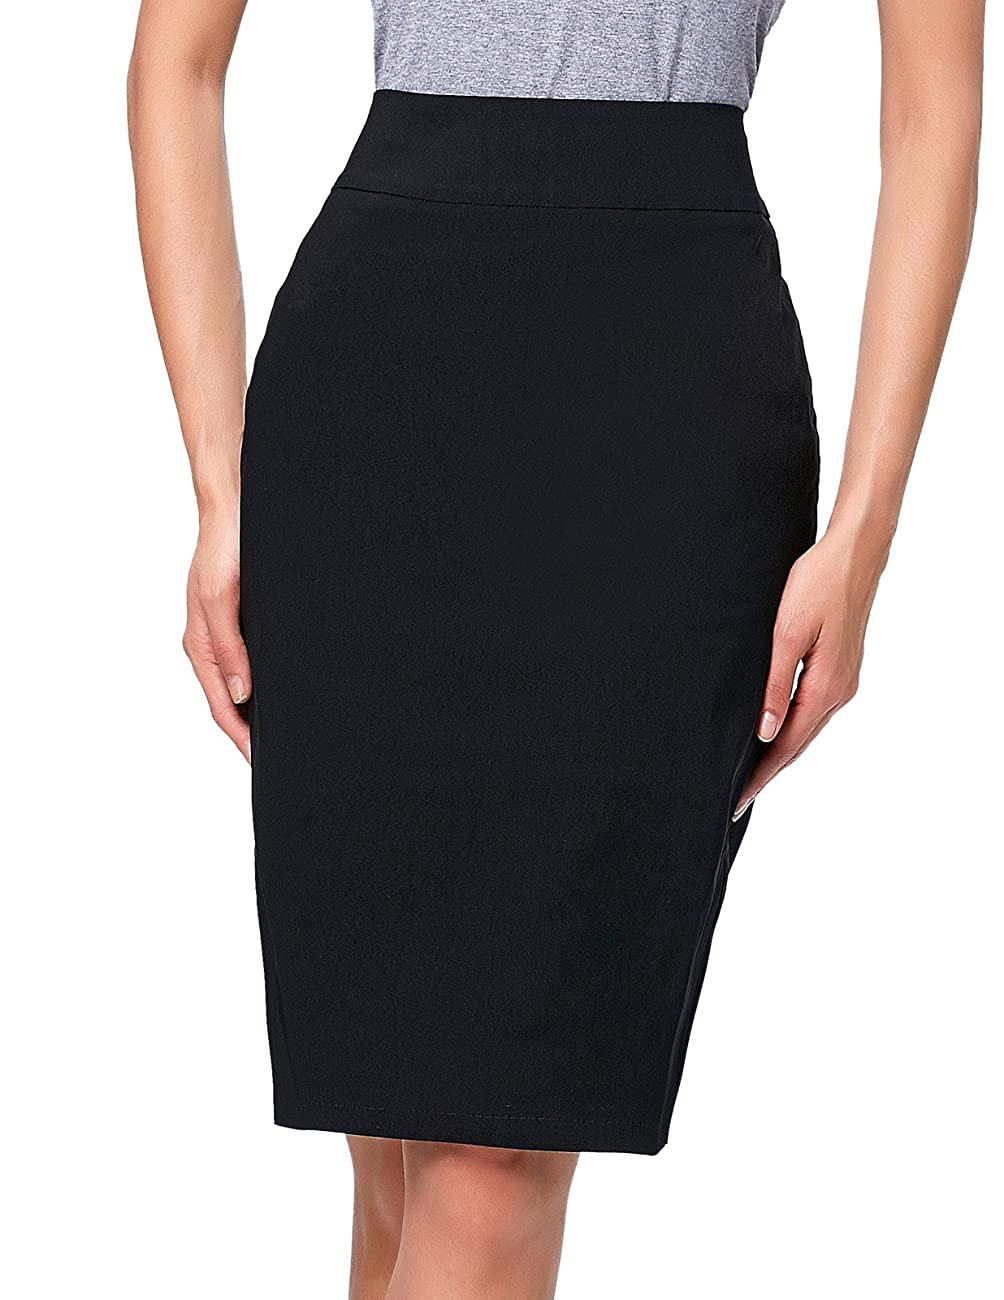 Kate Kasin®Women's Vintage Knee-Length Split Pencil Skirts 0